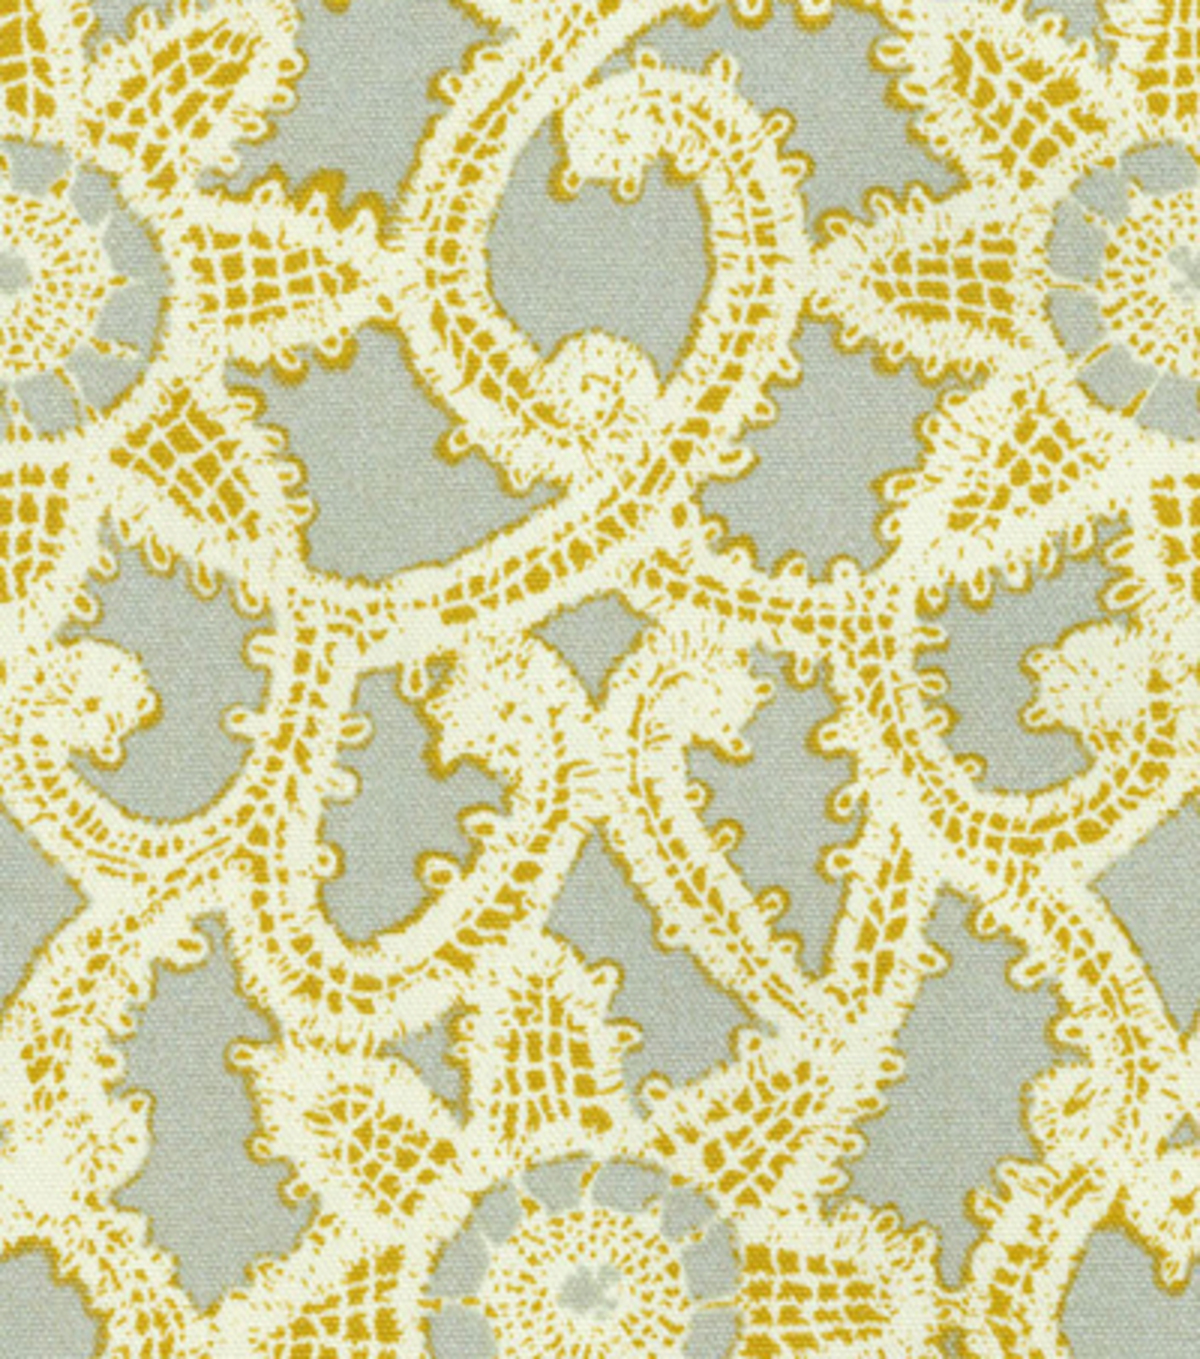 Home Decor 8''x 8'' Swatch- HGTV HOME Like Lace Platinum